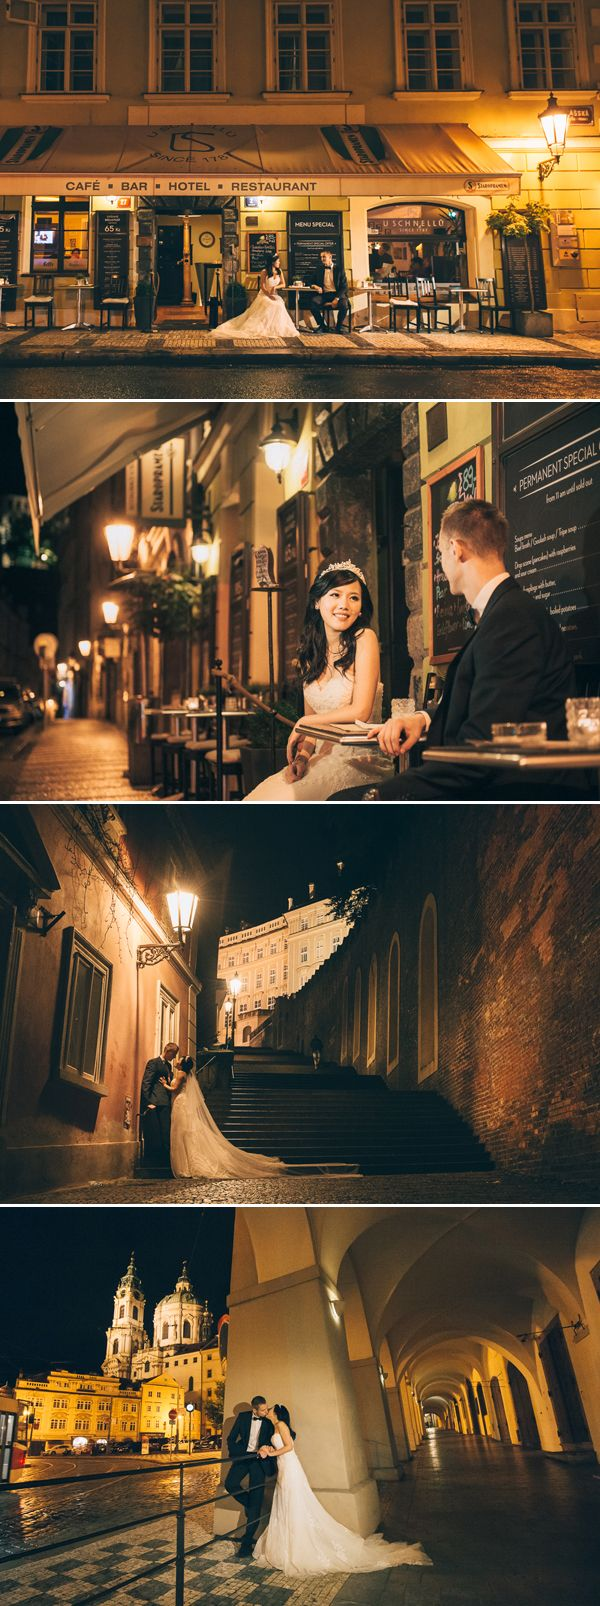 If you have ever dreamed of a place that feels like a fairytale with historical and romantic character, Prague is the right city to visit! There is something so incredibly romantic about traveling to Prague with the love of your life, and you know what's even better? Have your pre-wedding photos taken in the city …